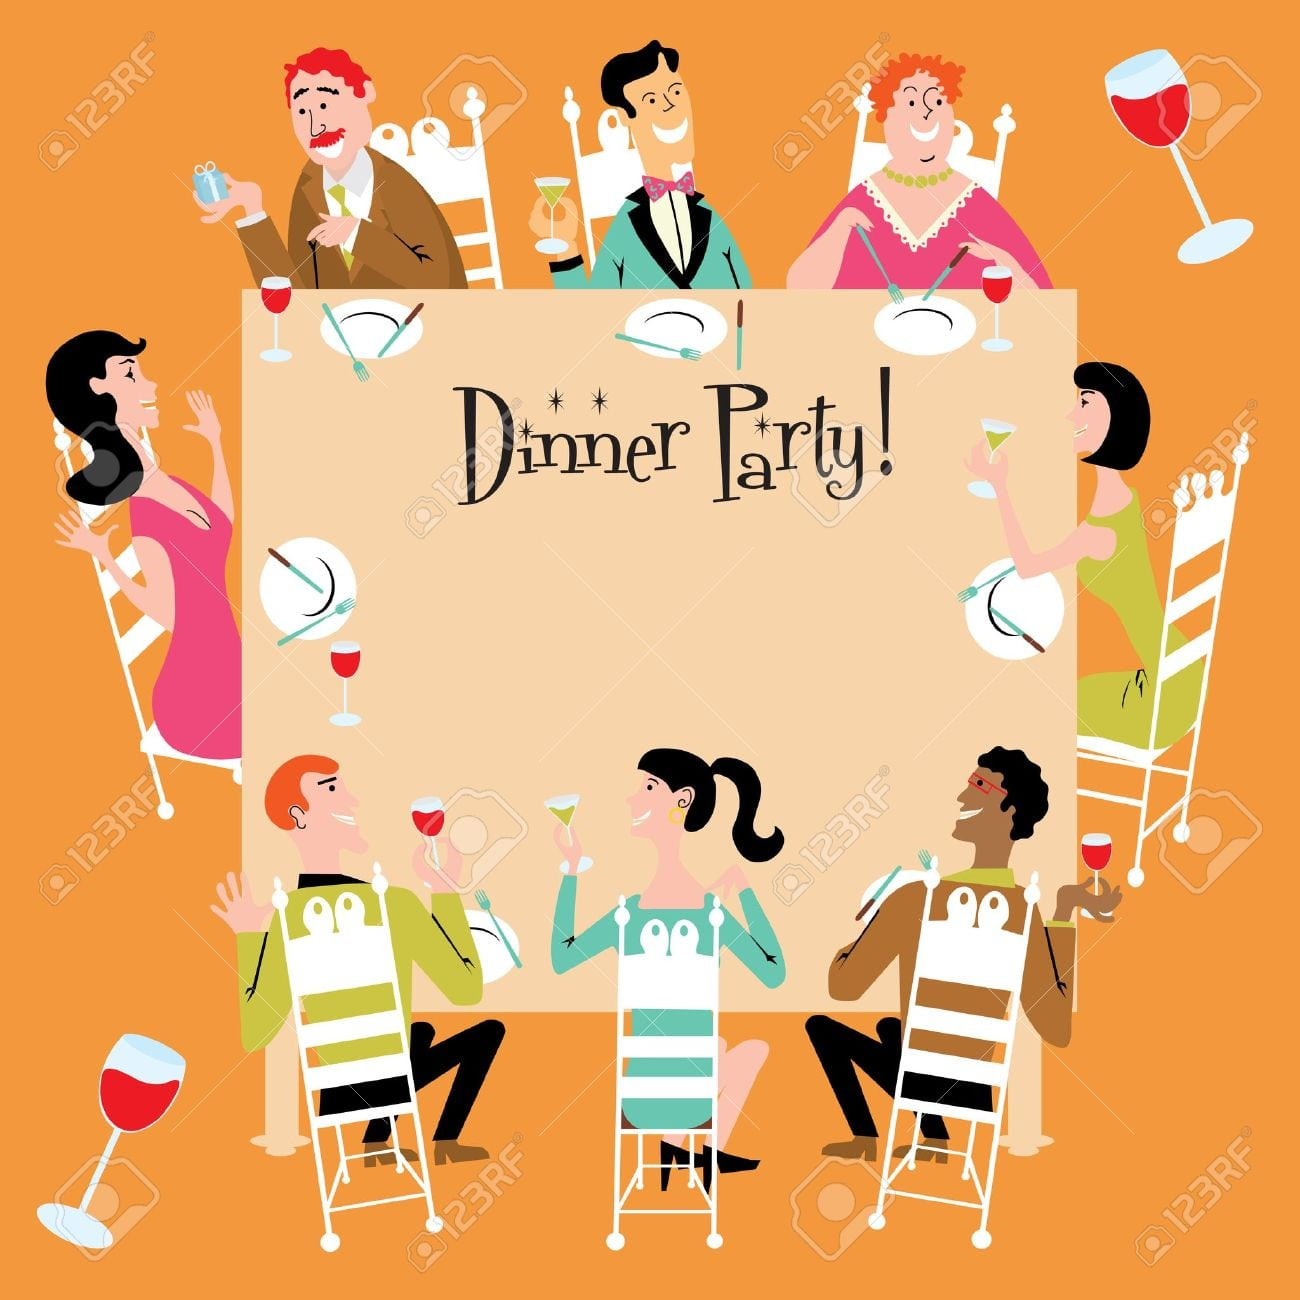 Dinner Party Invitation Royalty Free Cliparts, Vectors, And Stock